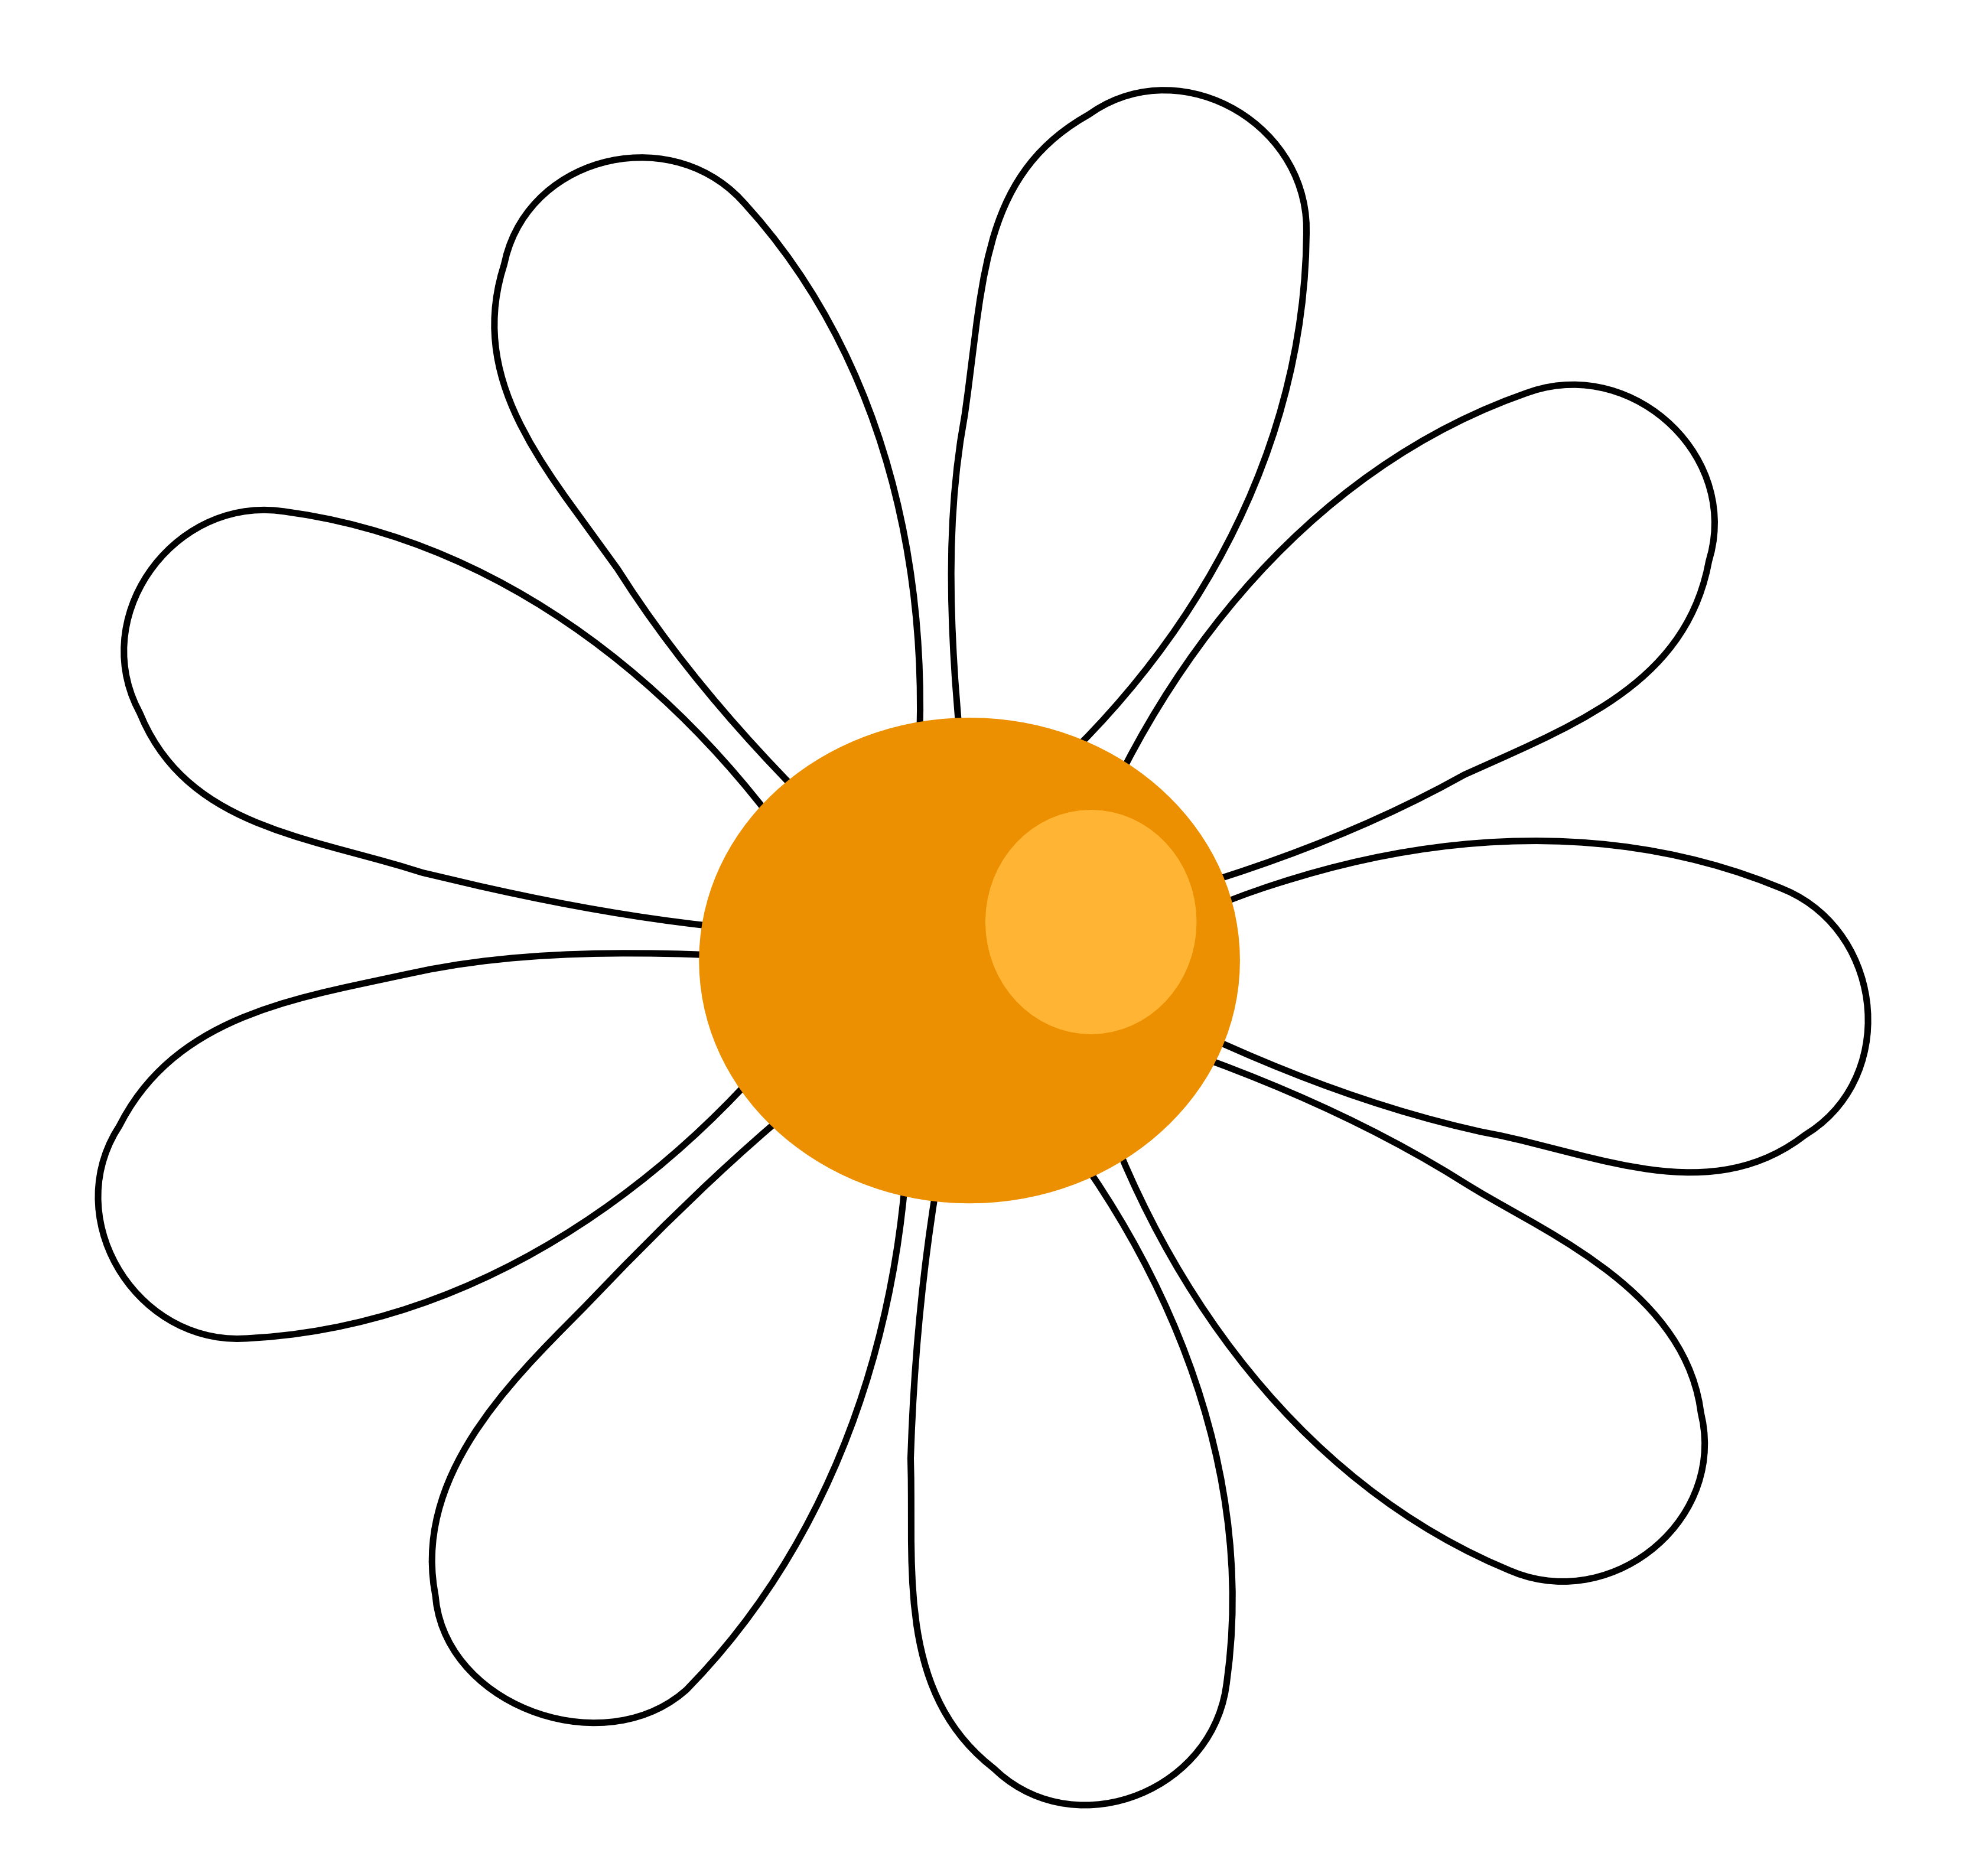 Daisy images clip art | Clipart Panda - Free Clipart Images